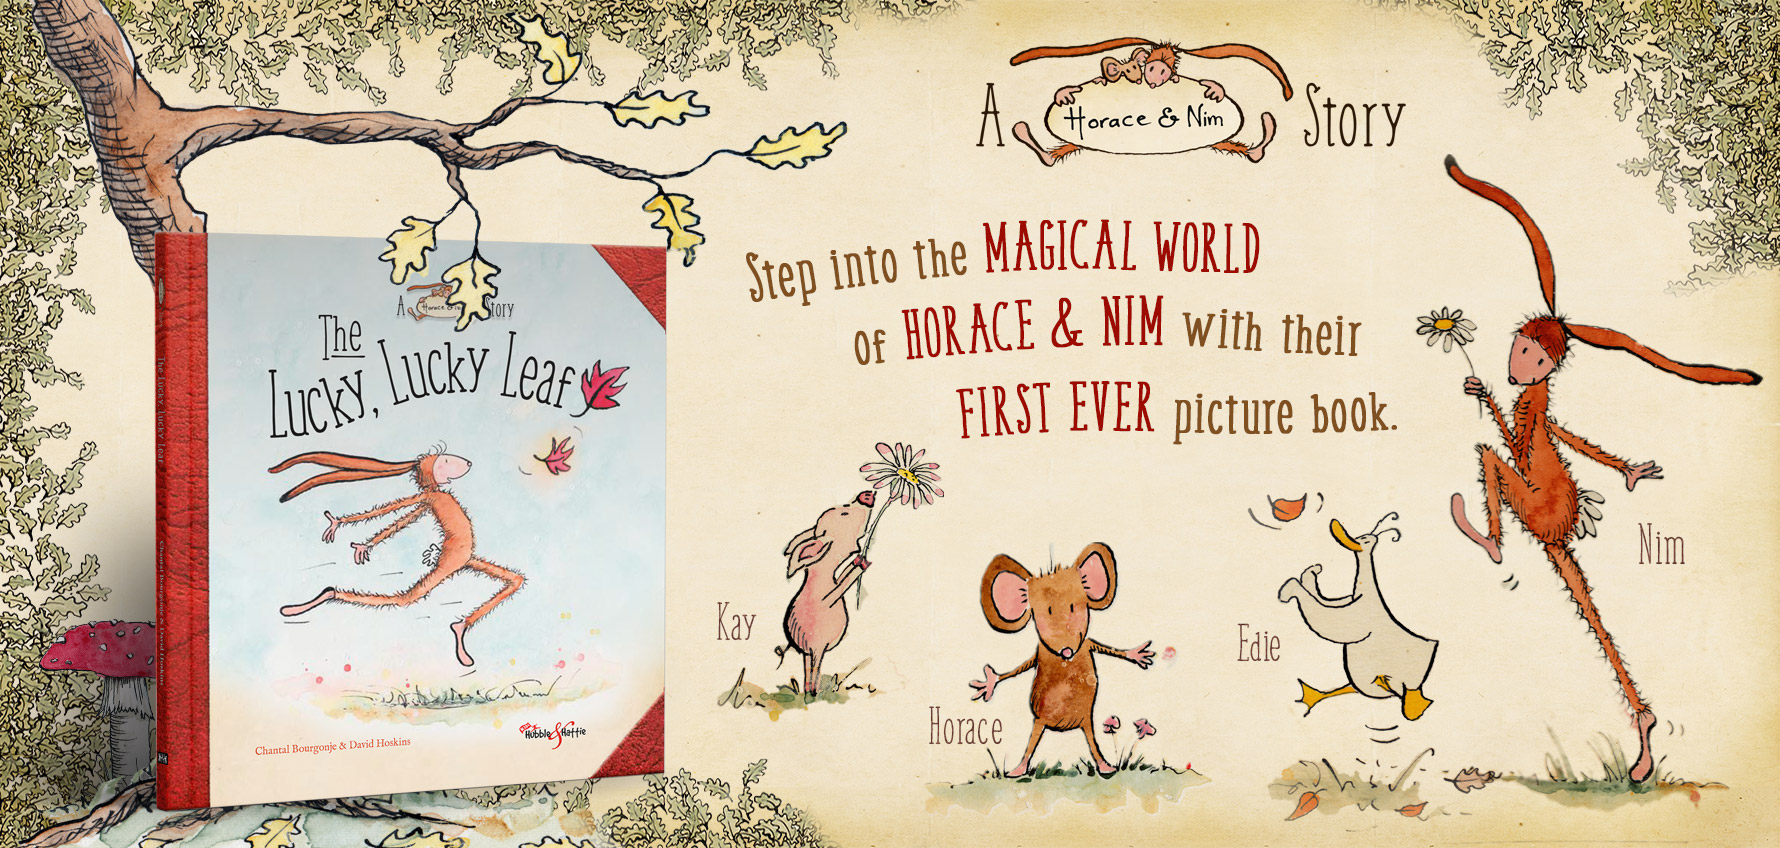 Step into the magical world of Horace & Nim in their first adventure … The Lucky, Lucky Leaf!